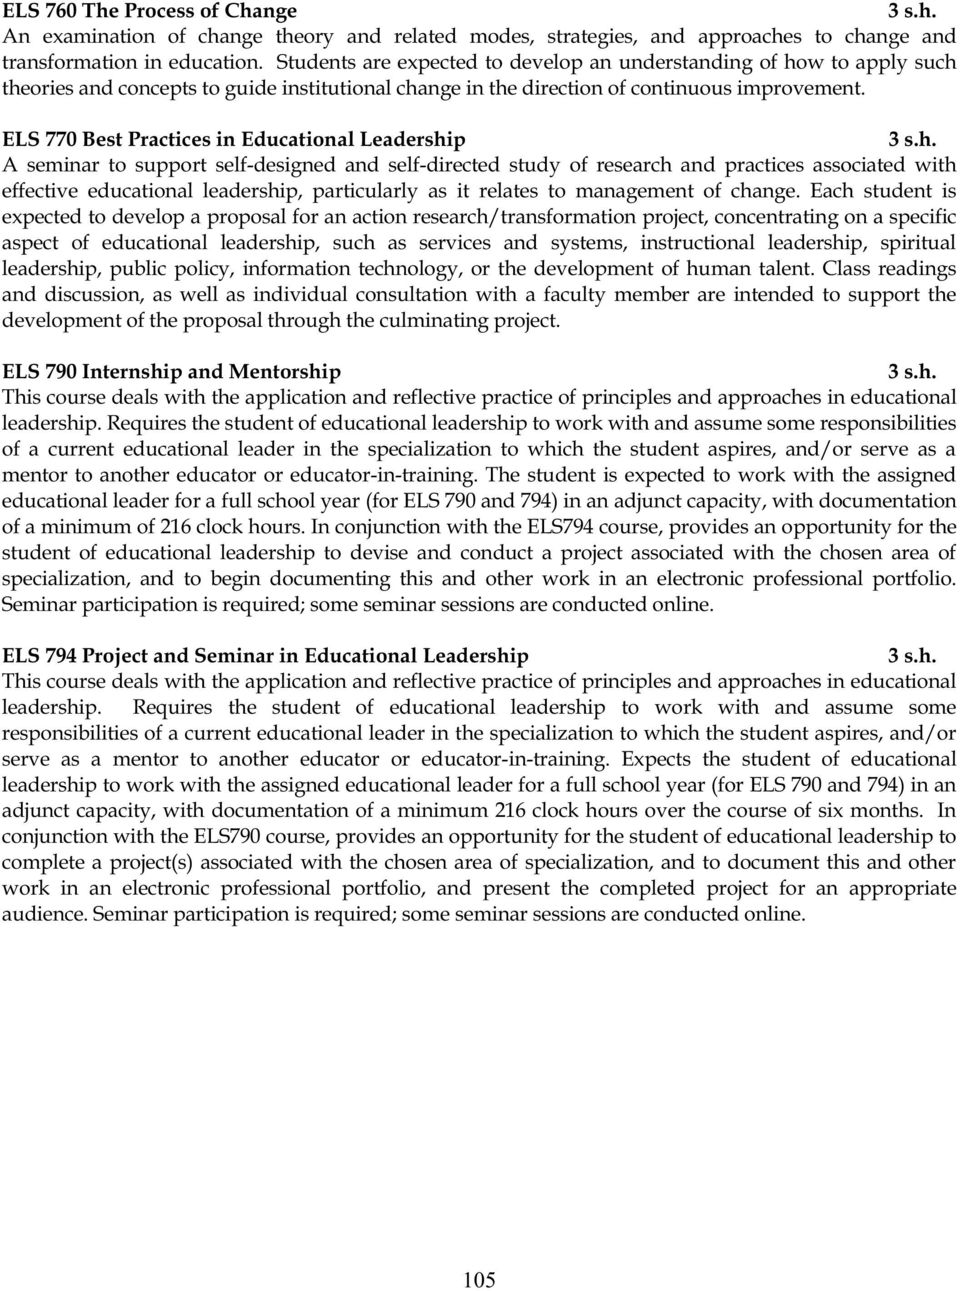 ELS 770 Best Practices in Educational Leadership A seminar to support self-designed and self-directed study of research and practices associated with effective educational leadership, particularly as